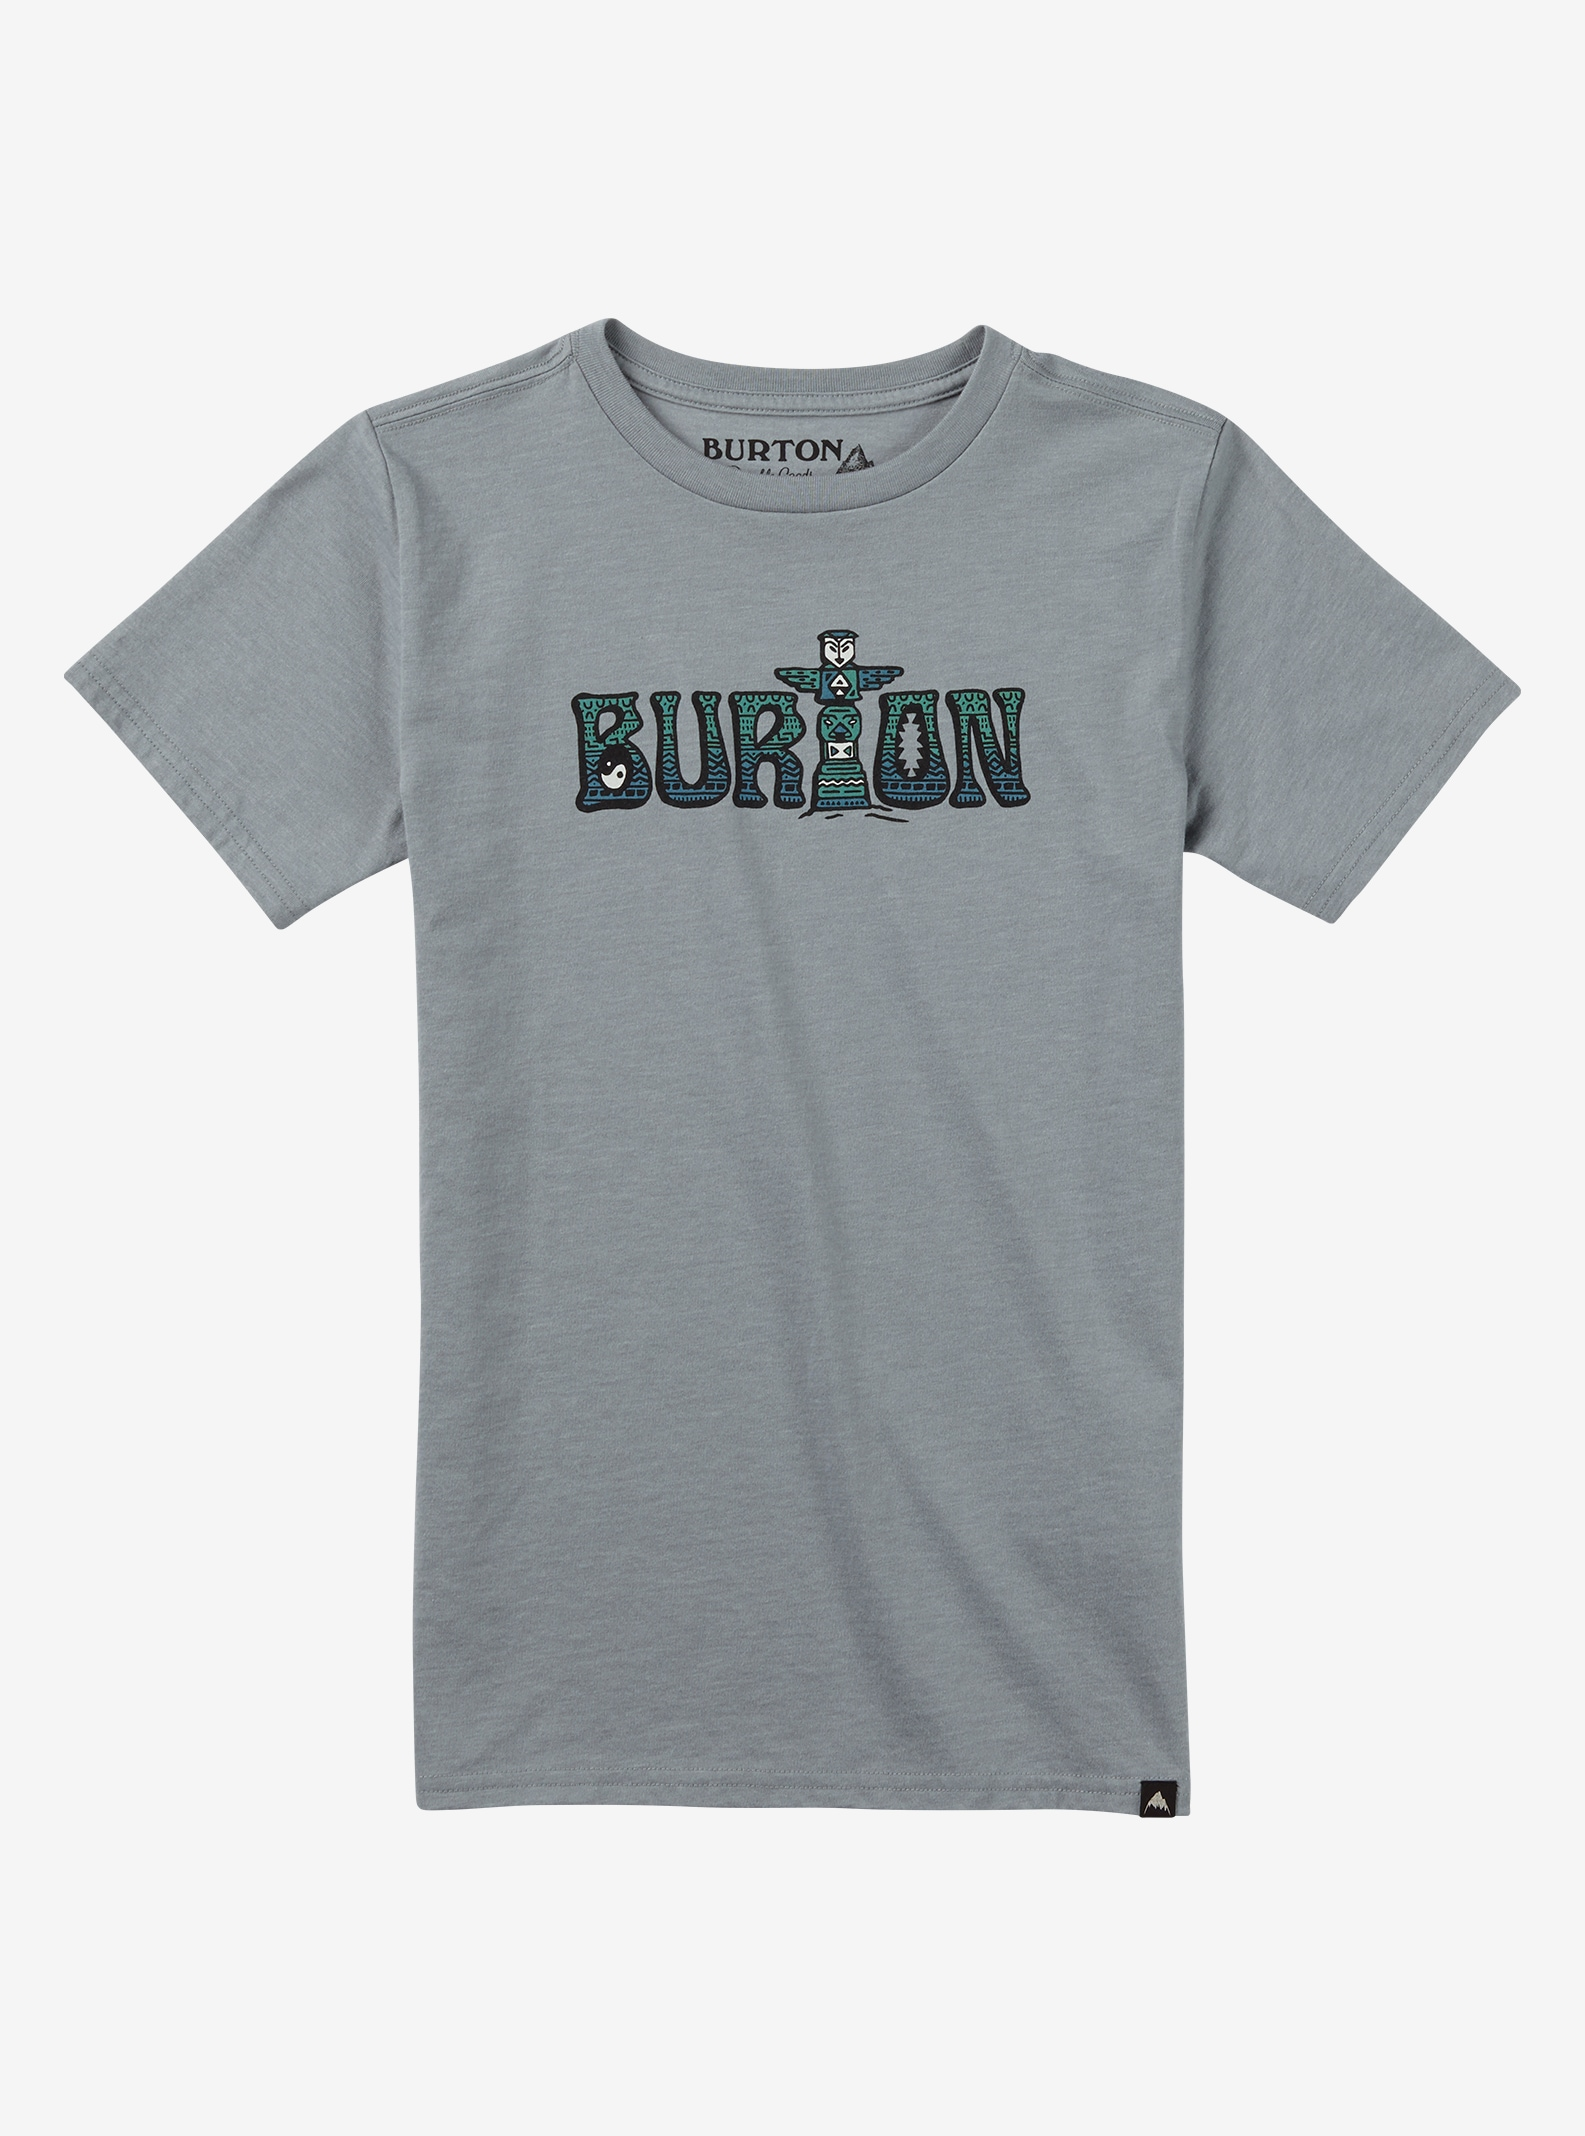 Burton Boys' Wild Child Short Sleeve T Shirt shown in Gray Heather